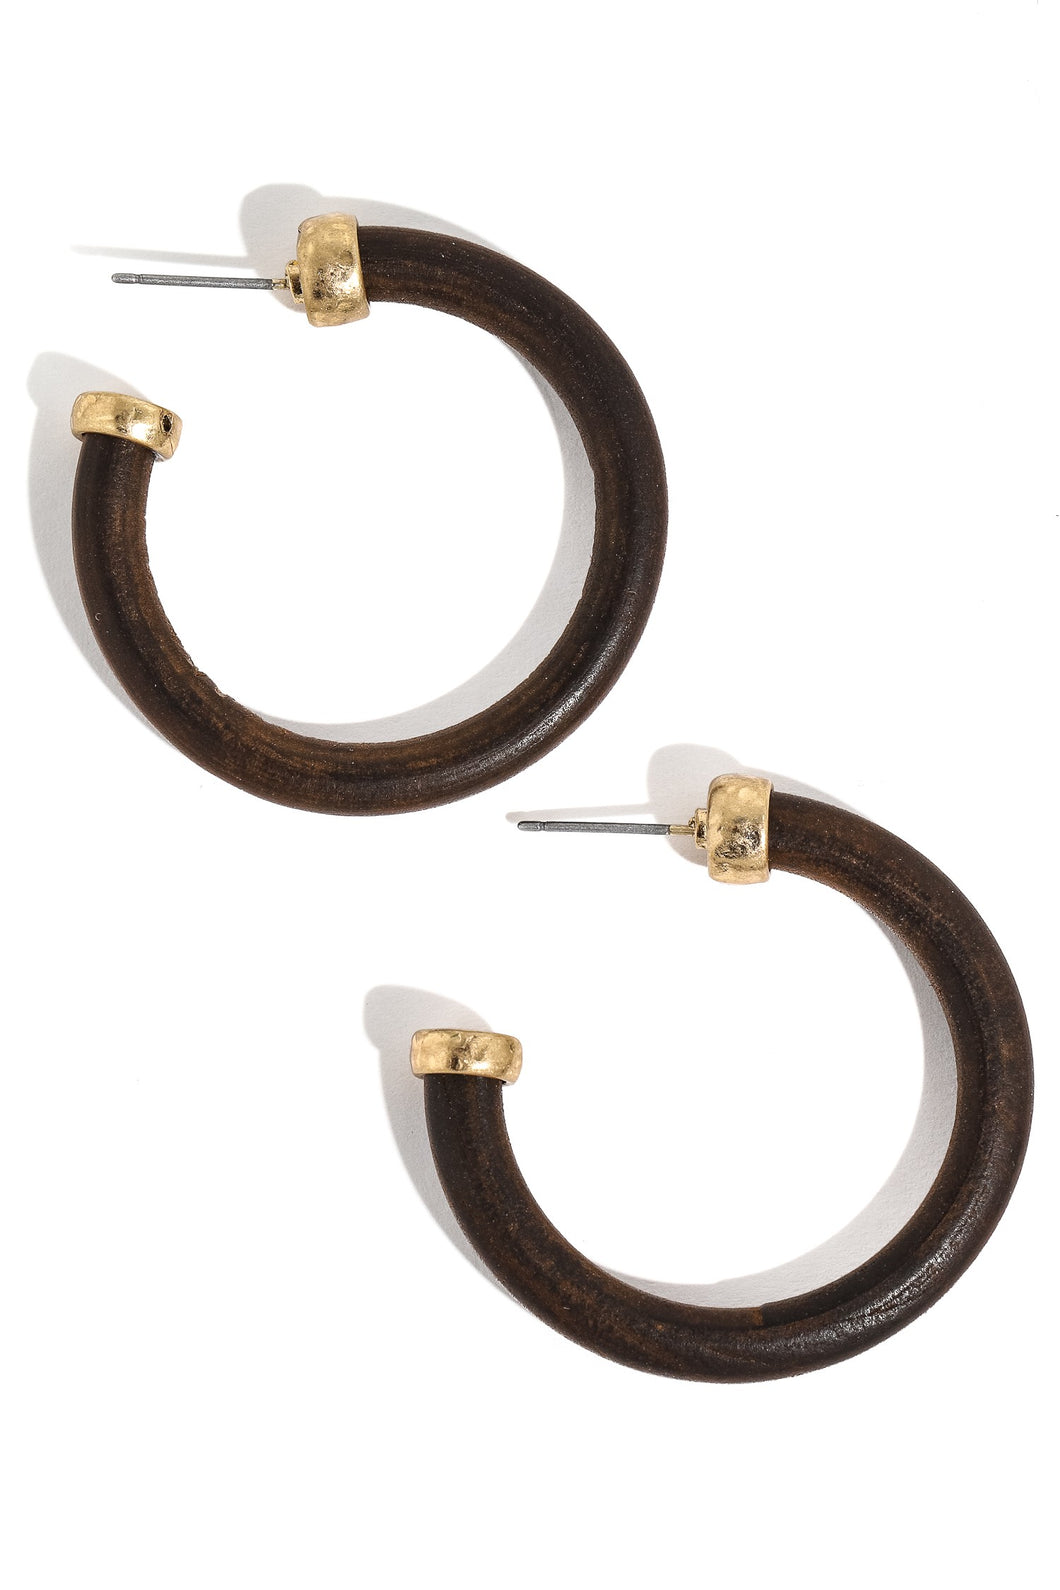 ROUNDED WOODEN HOOP EARRINGS